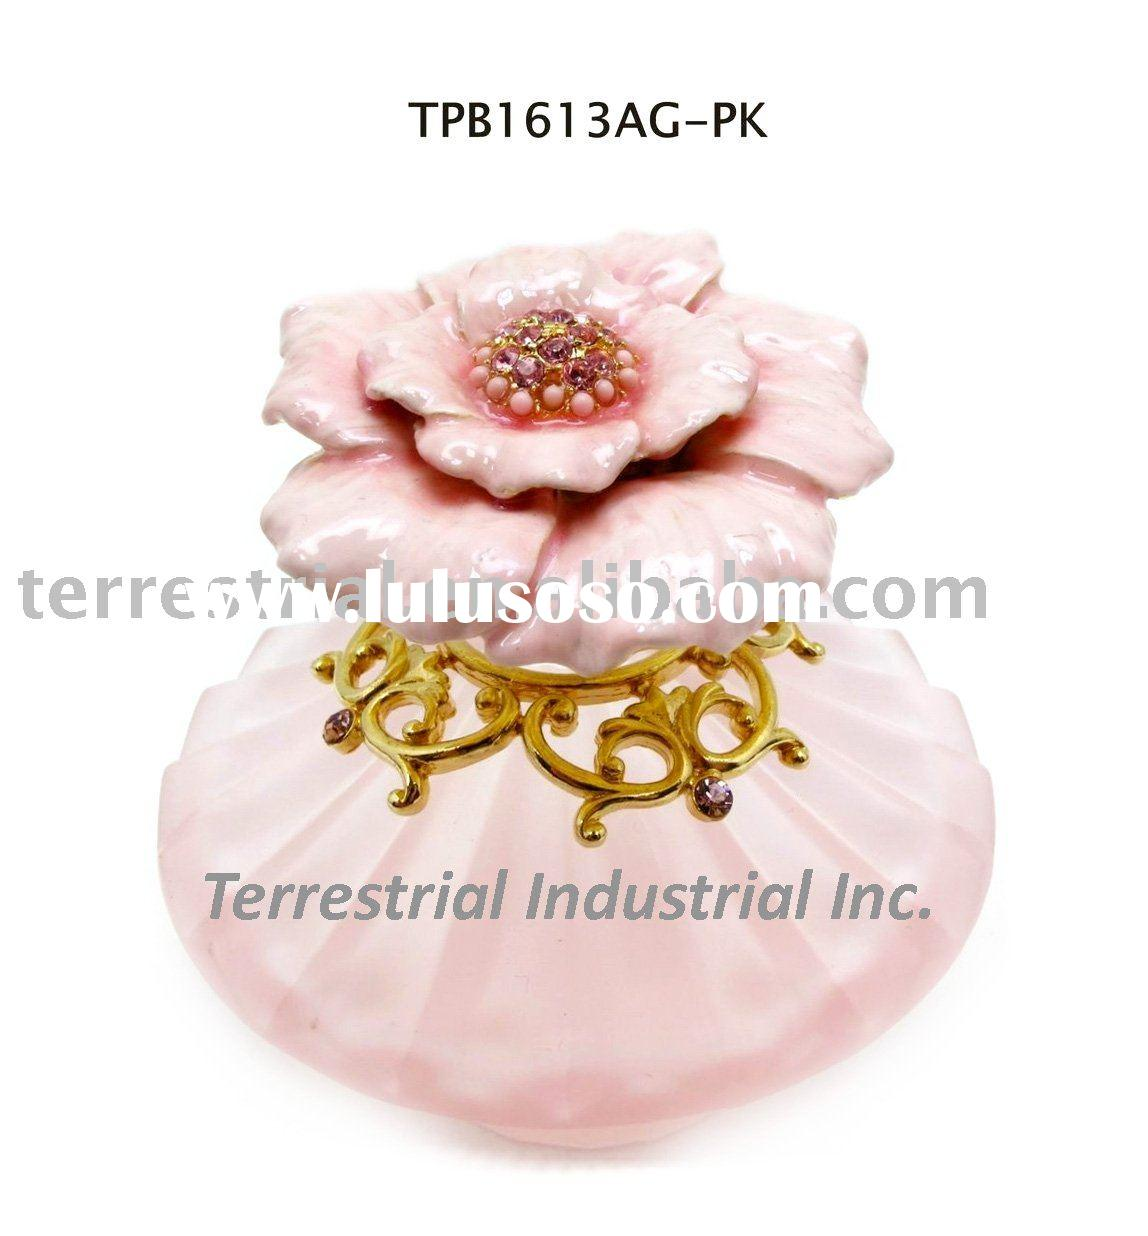 Glass perfume bottle with camellia decor